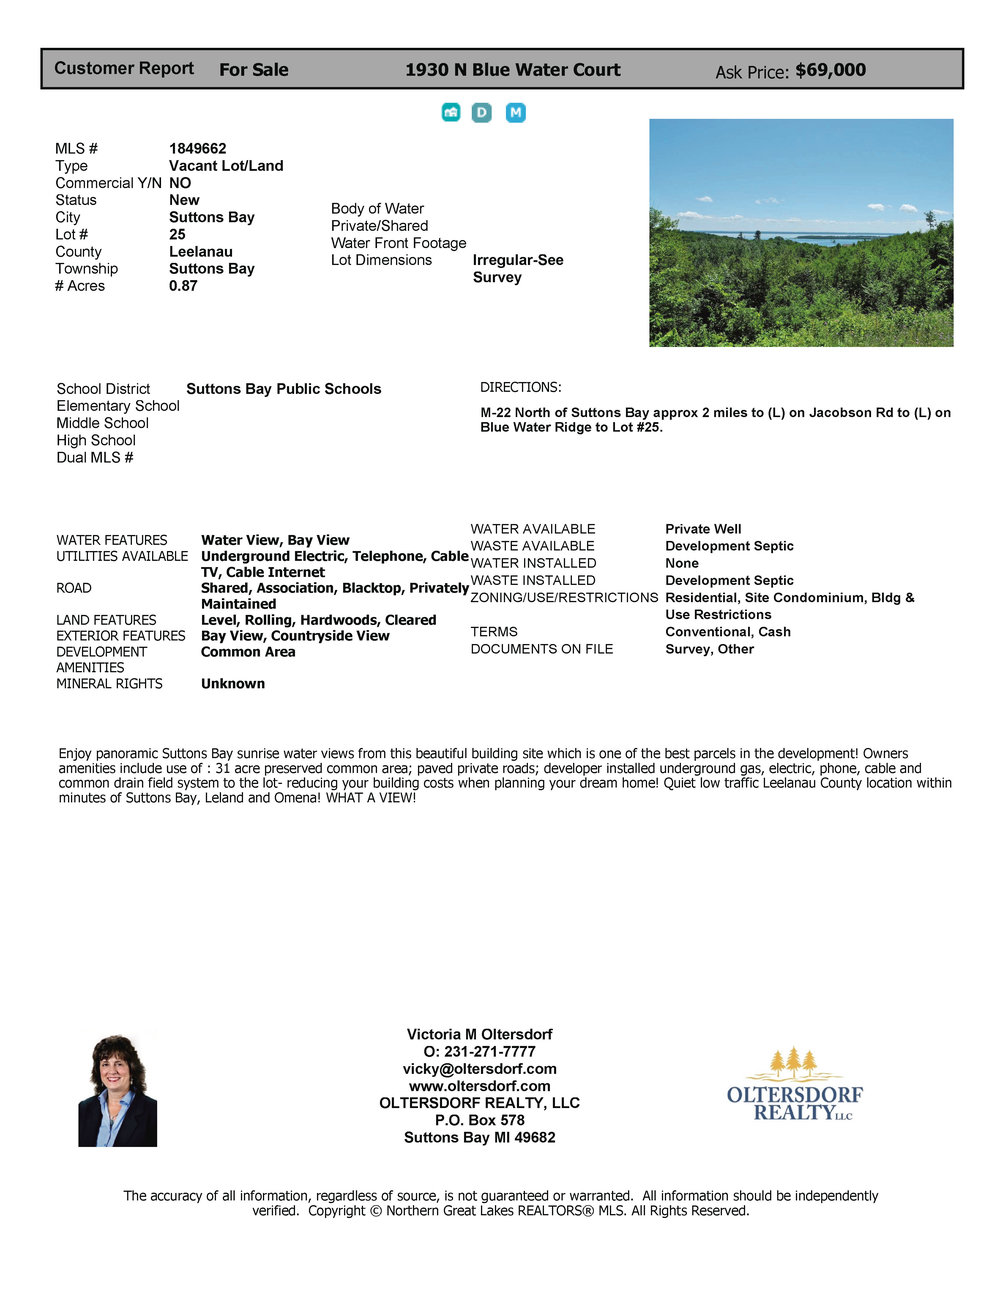 1930 N Blue Water Court, Suttons Bay 69k price reductiont.jpg